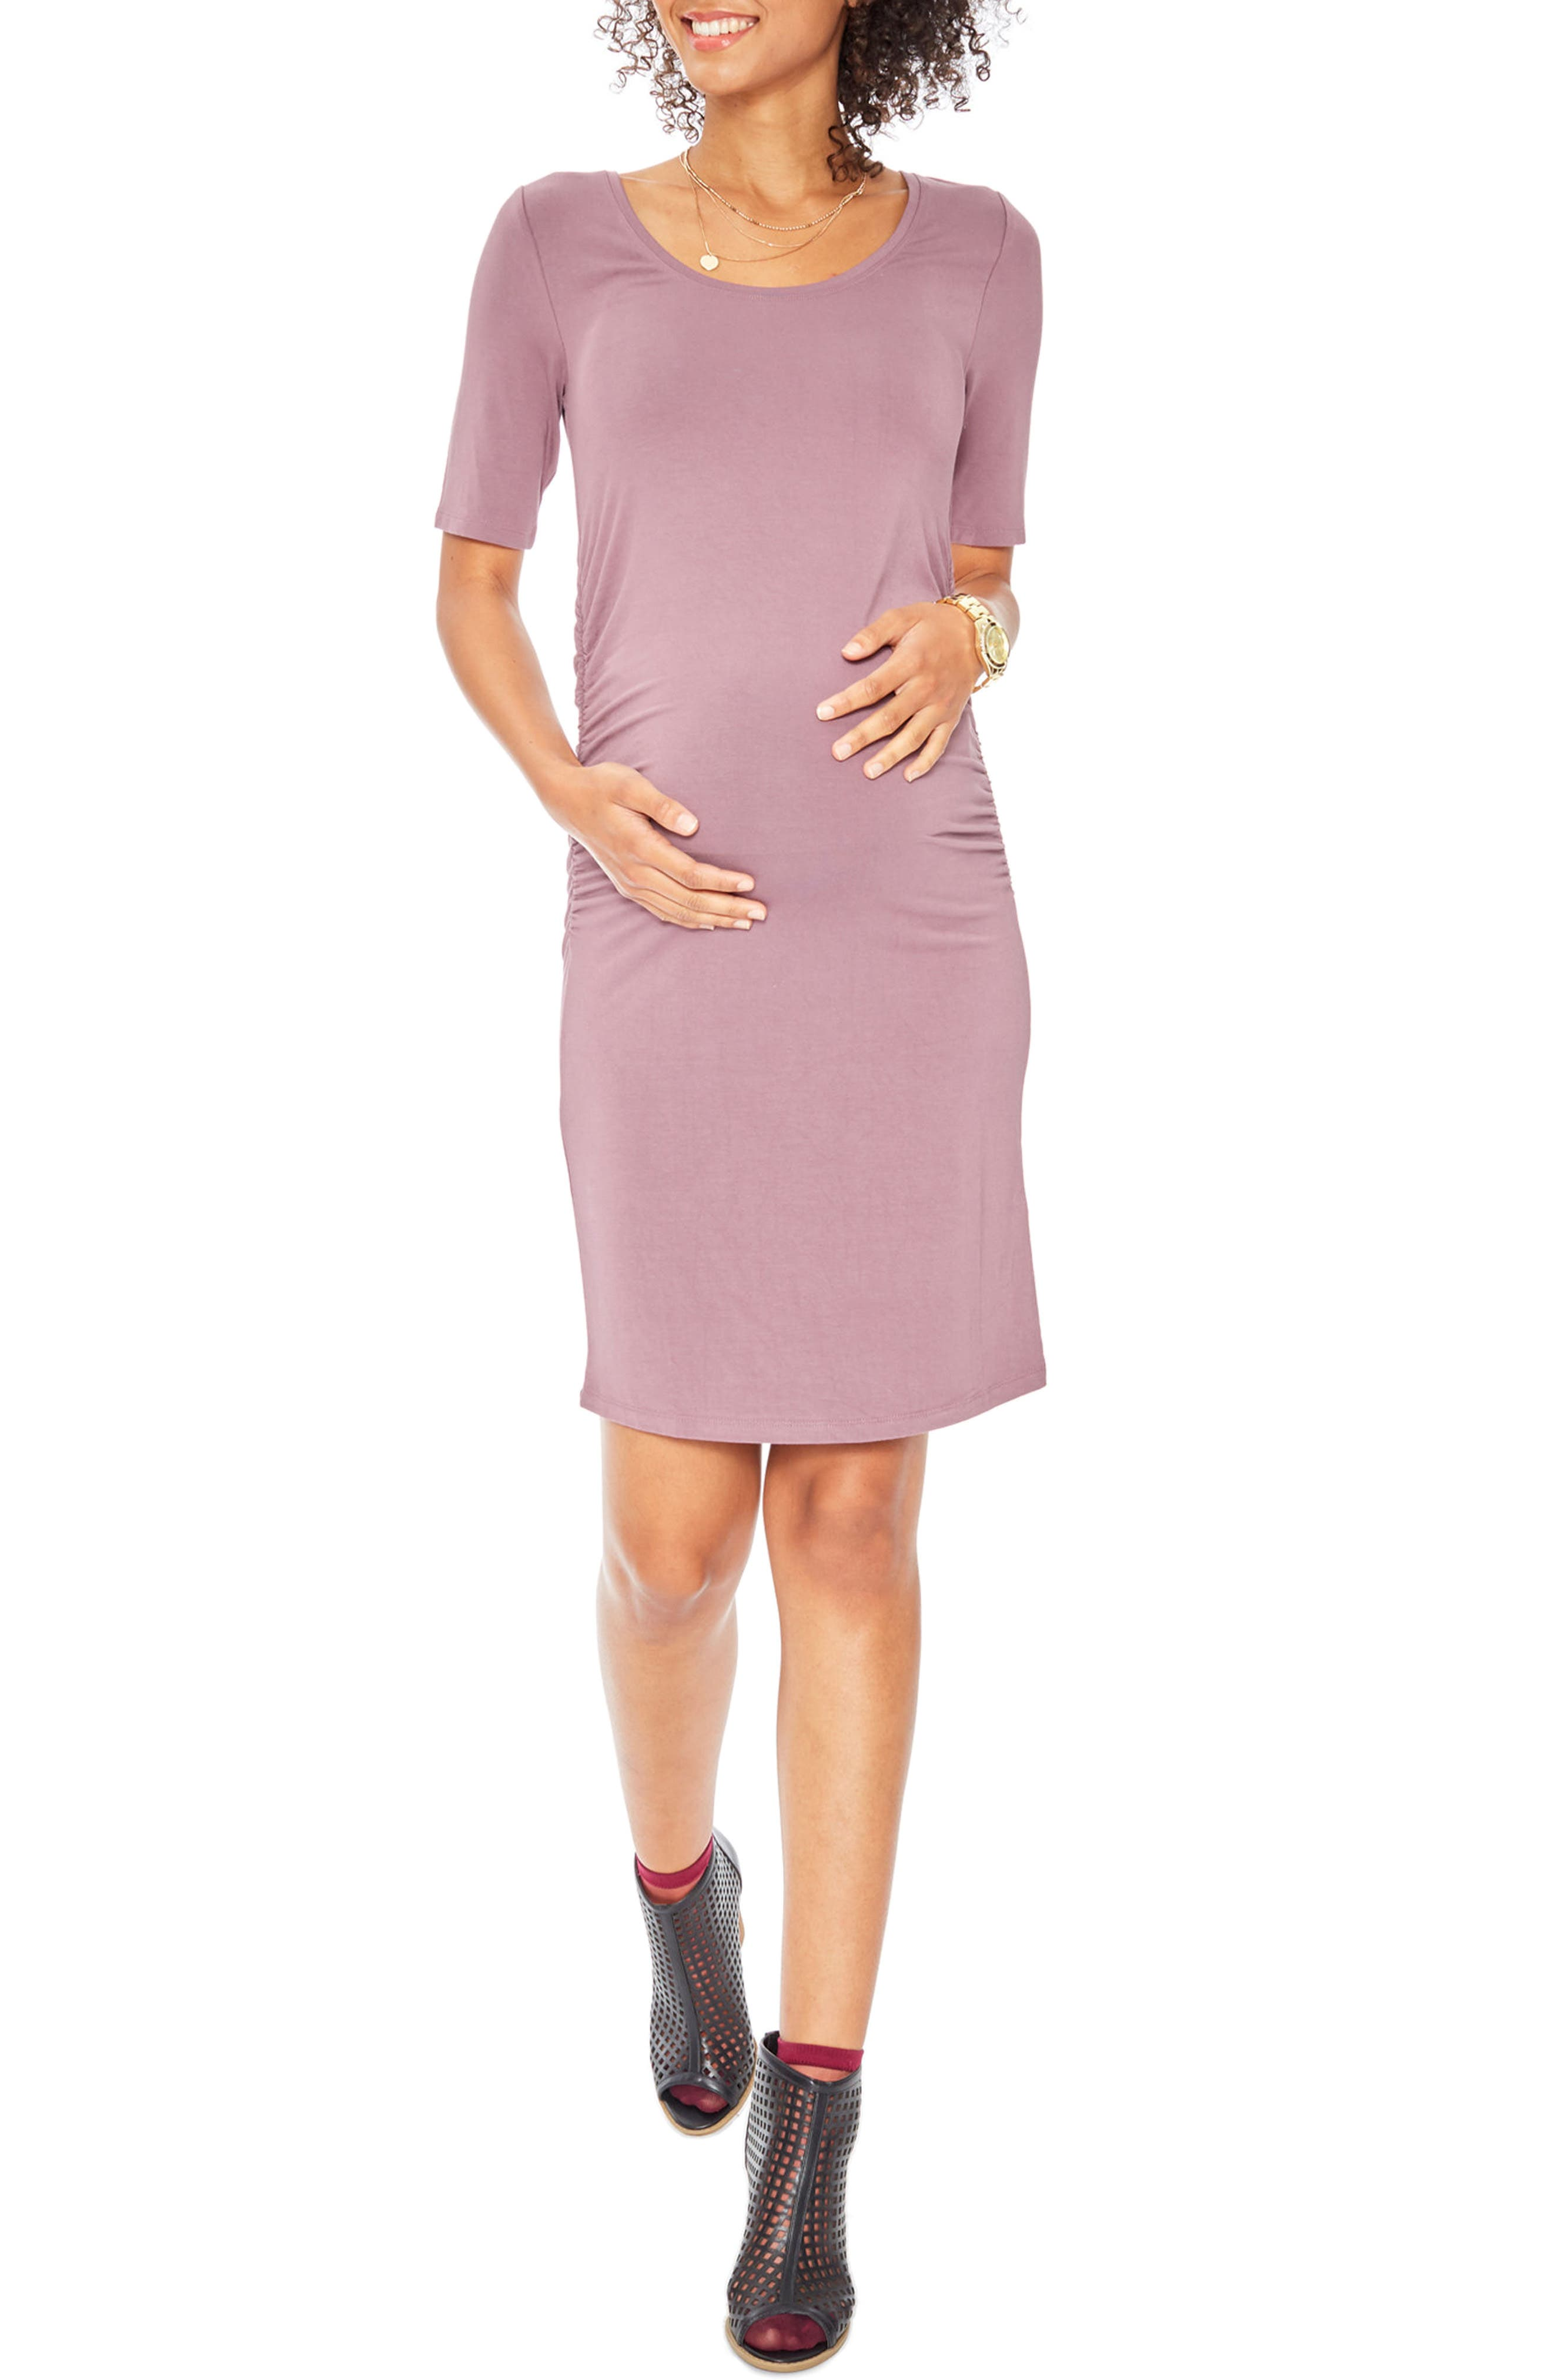 Ruth Maternity Dress,                         Main,                         color, Stone Rose